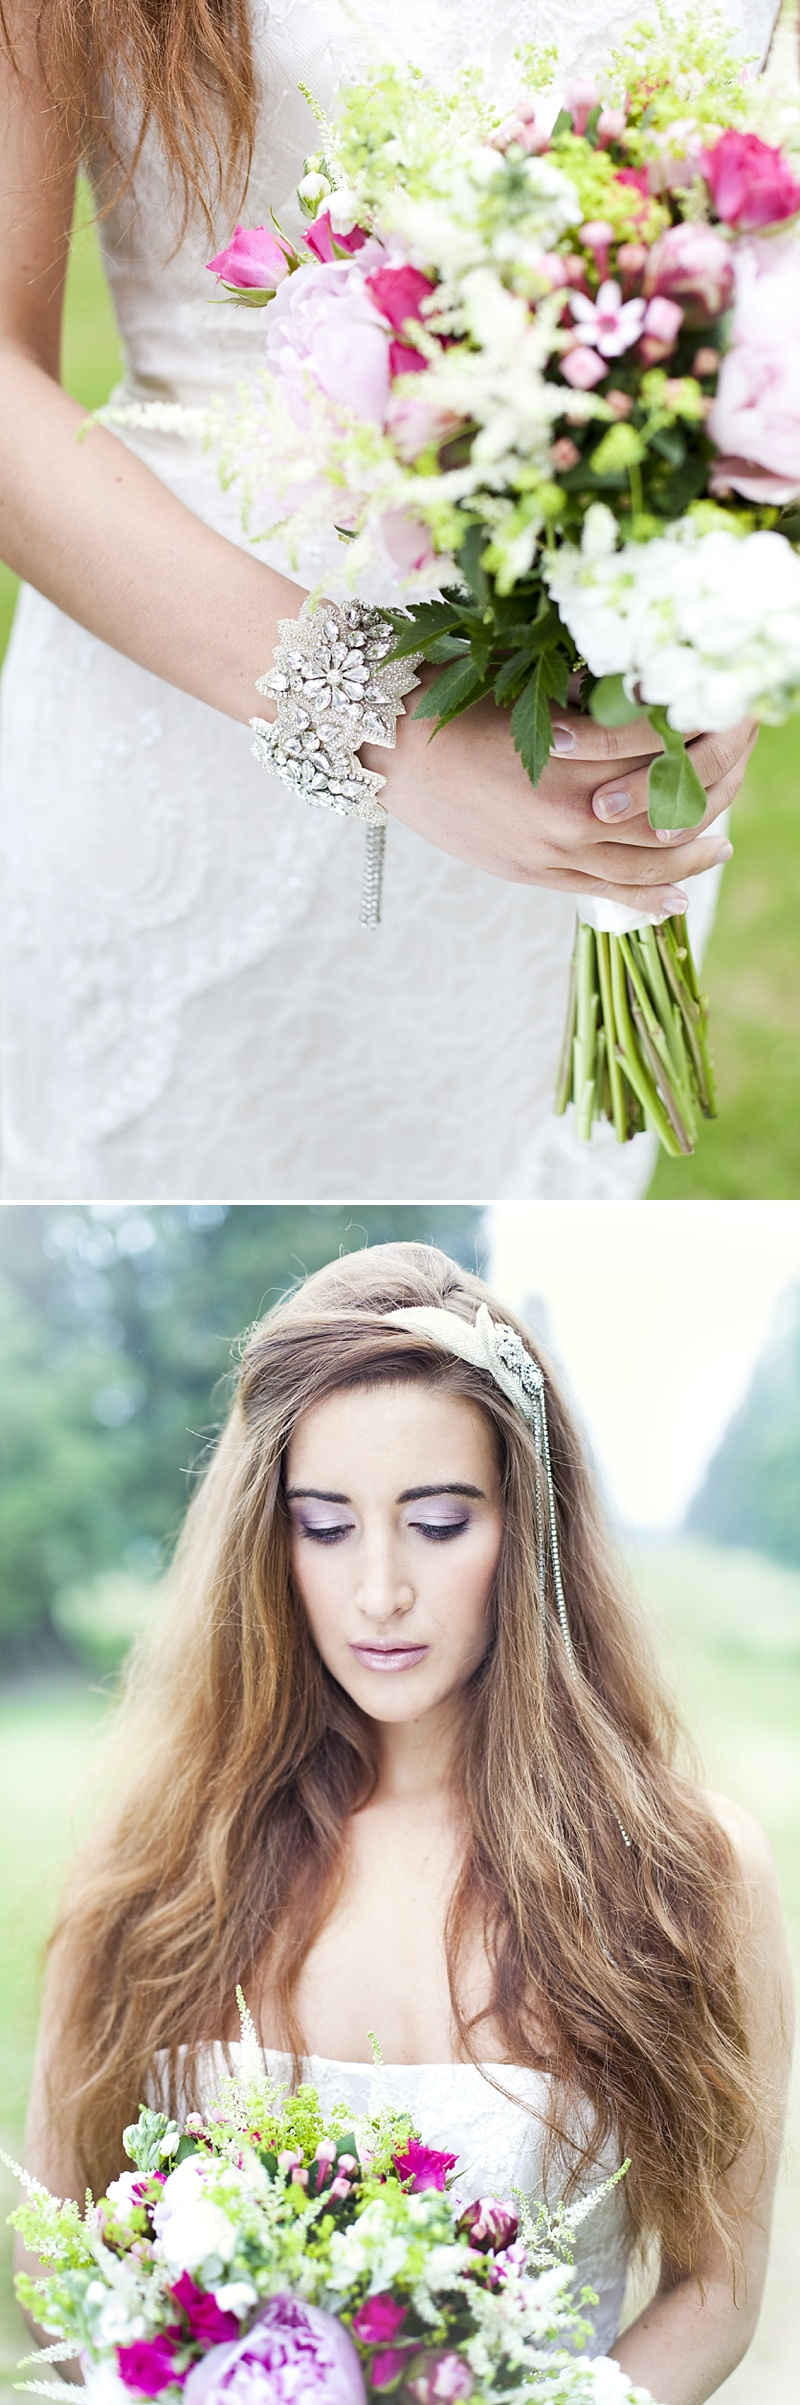 Inspiration Shoot Featuring Donna Crain Headpieces With A Bridal Make Up Product Recommendations From Adele Rosie Make Up Artist Images By Cecelina Photography_0002